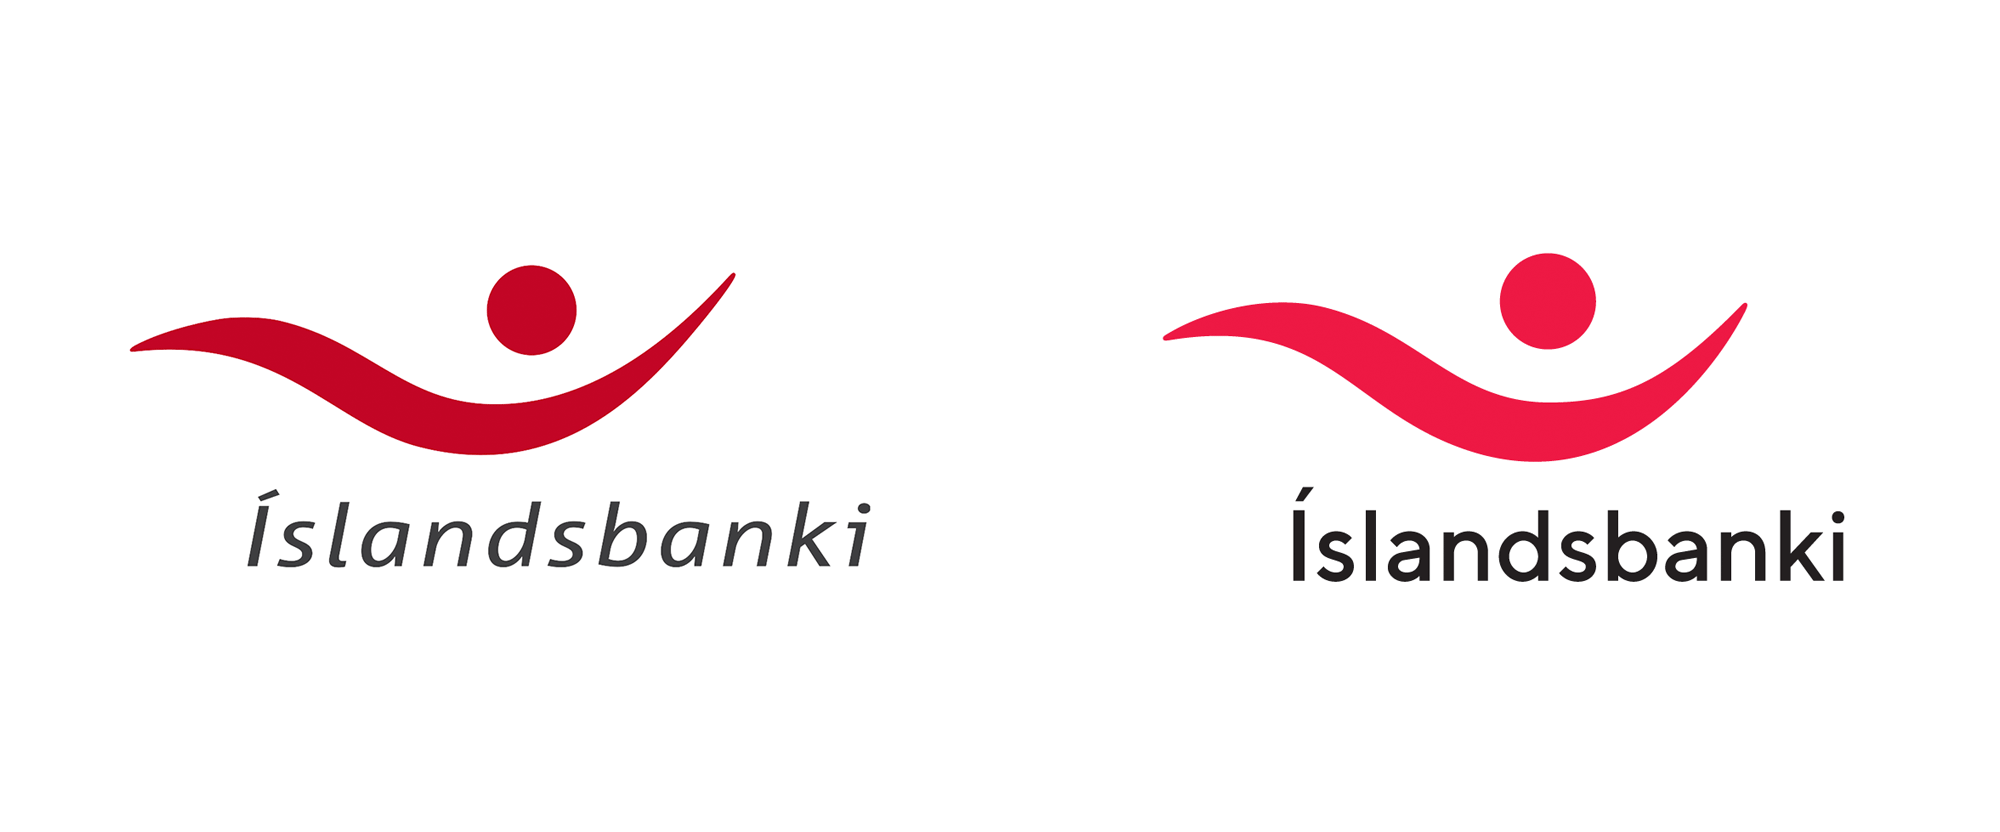 New Logo and Identity for Íslandsbanki by Brandenburg